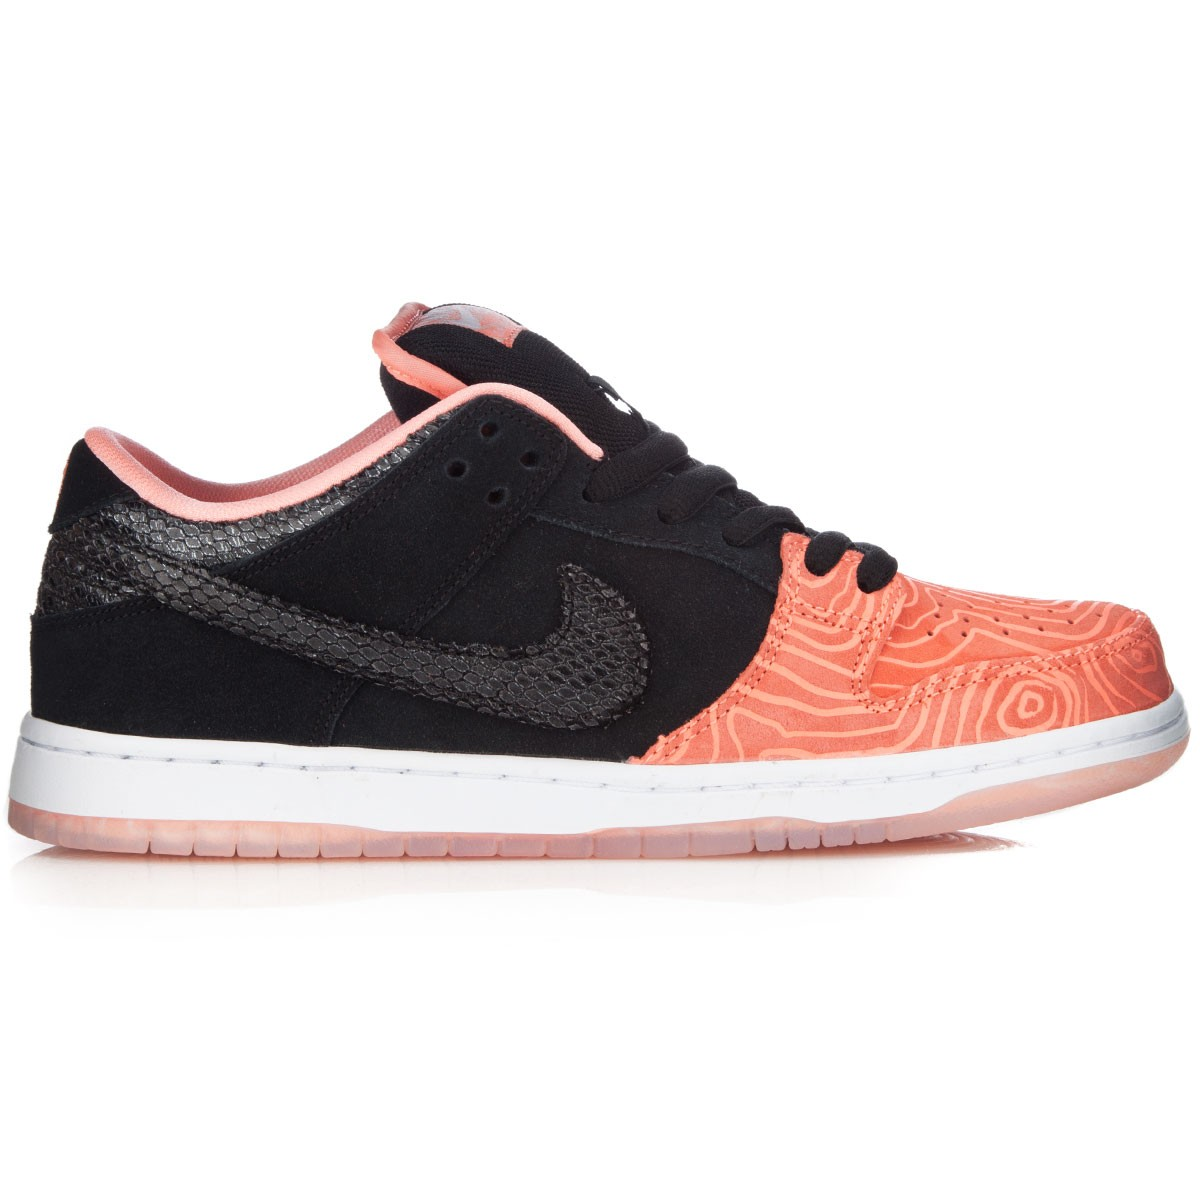 more photos 1870e af4aa nike dunks 08 Our sports store nike air max 1 pink cooler ...